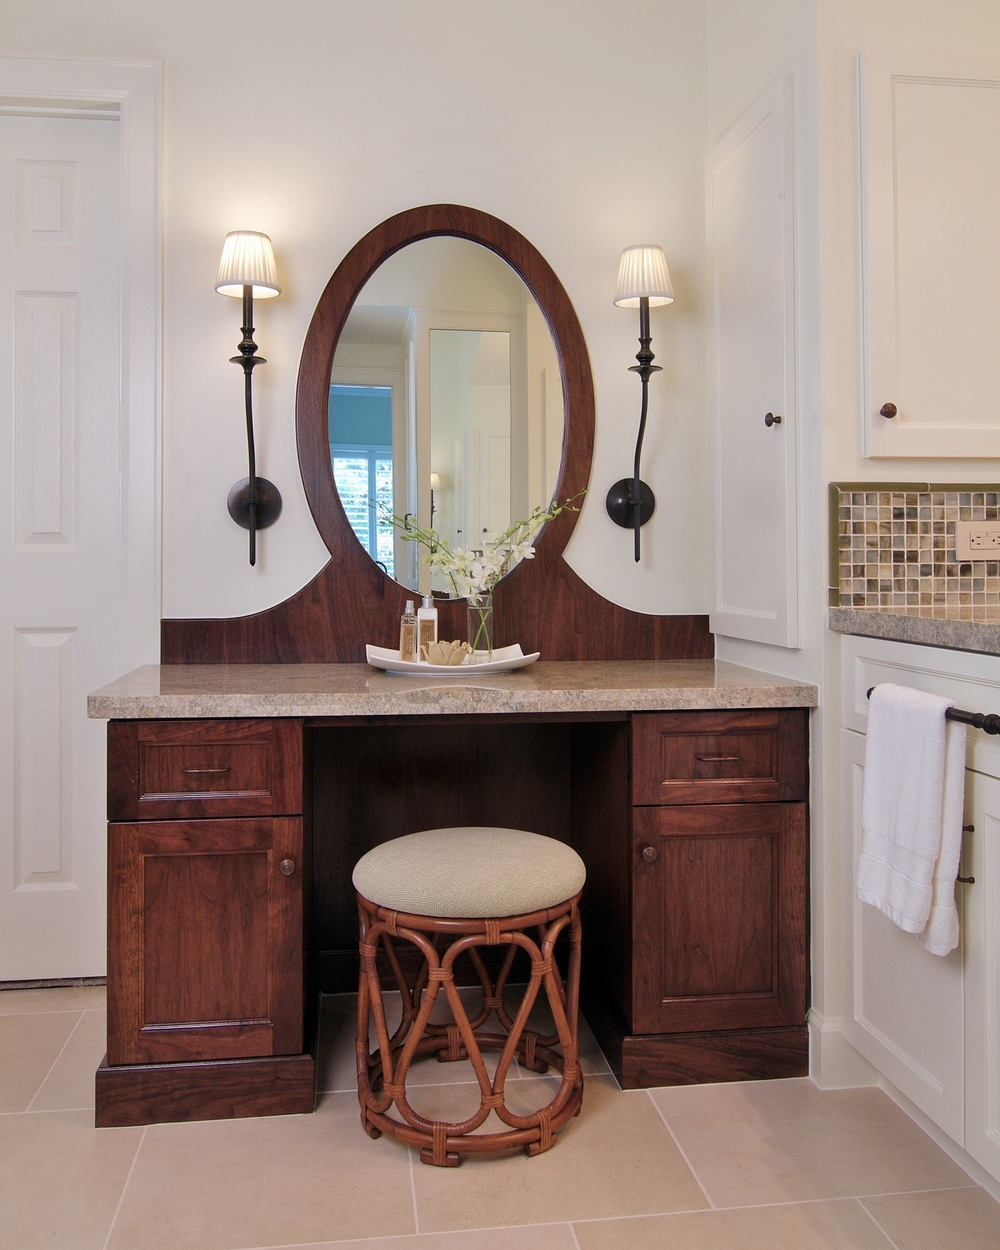 Bathroom remodel with vanity, Designer: Carla Aston